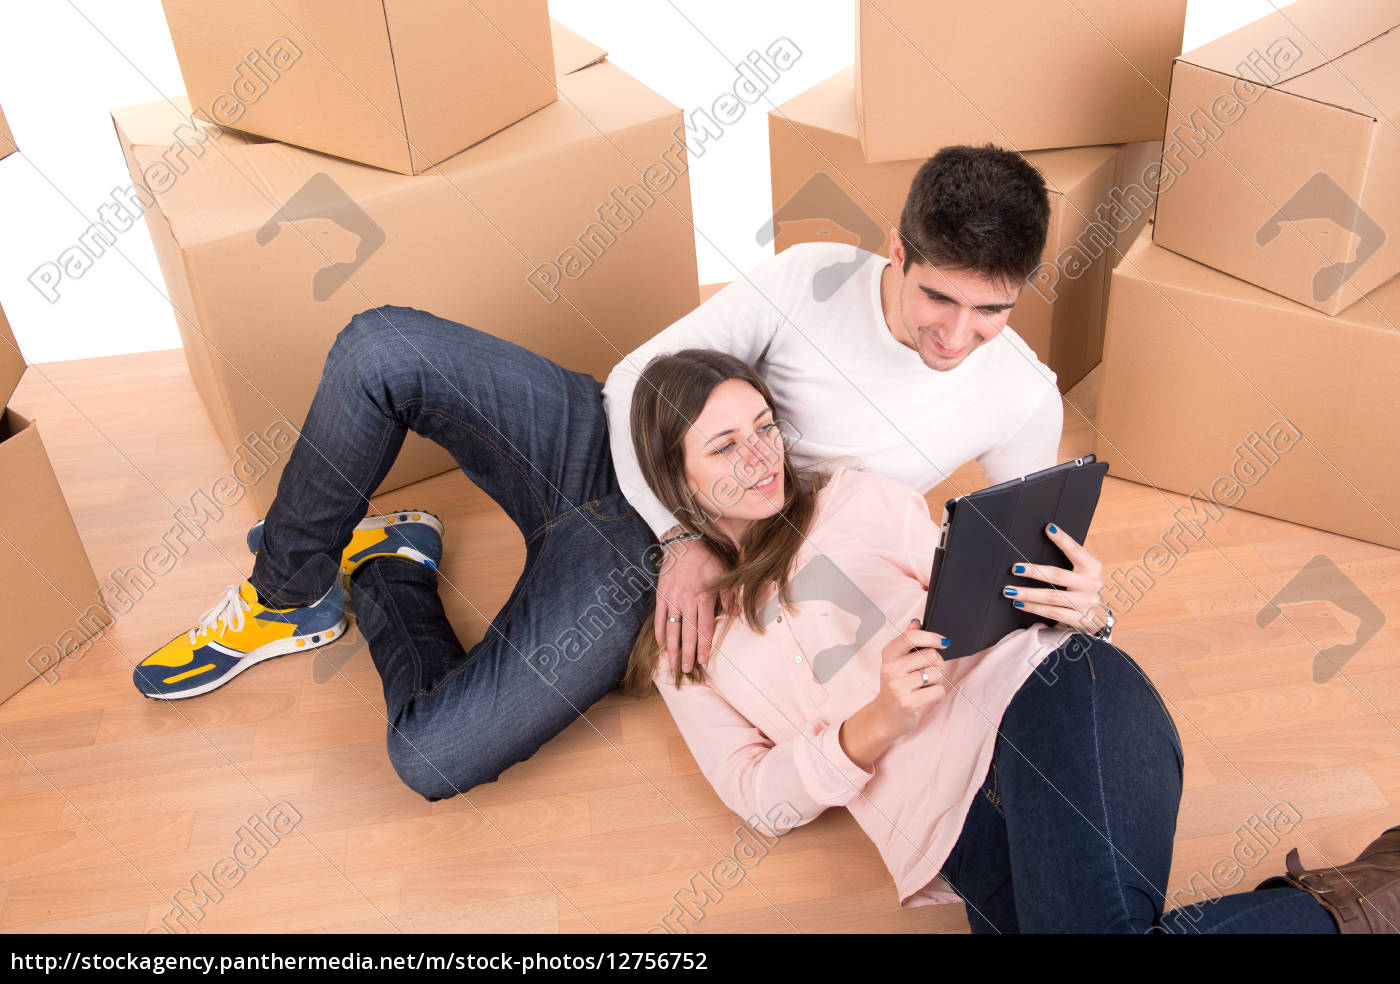 happy, couple, with, boxes - 12756752